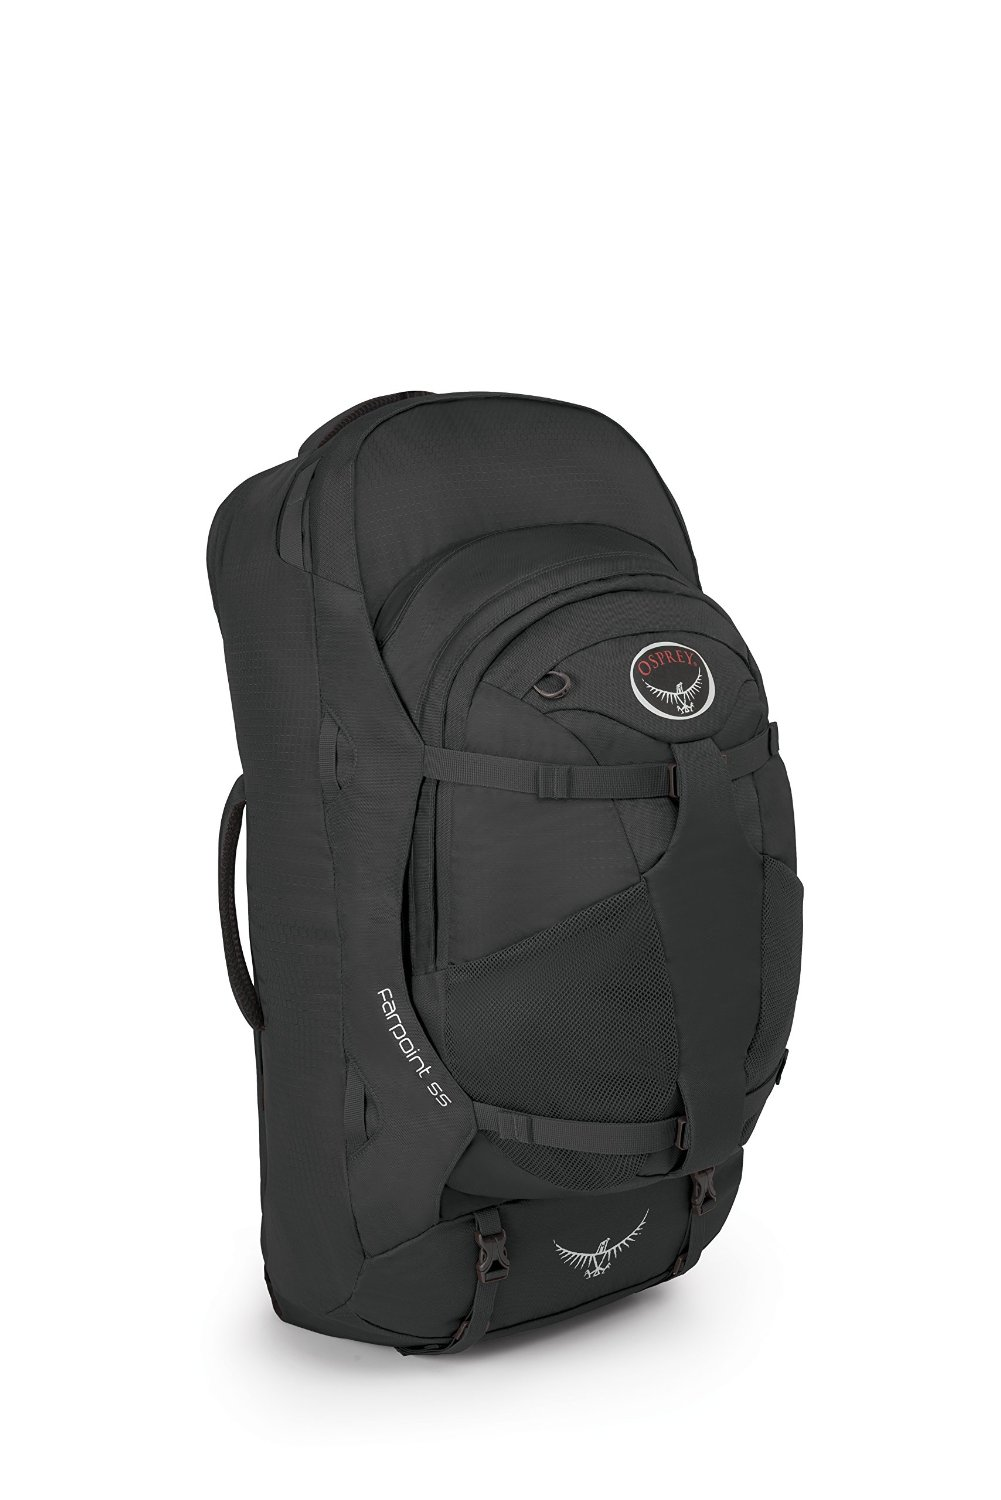 This [travel backpack from Osprey](https://www.amazon.com/Osprey-Farpoint-Travel-Backpack-Caribbean/dp/B014EBLREI?tag=toolstoysdeals-20) is one of the very best you can buy.